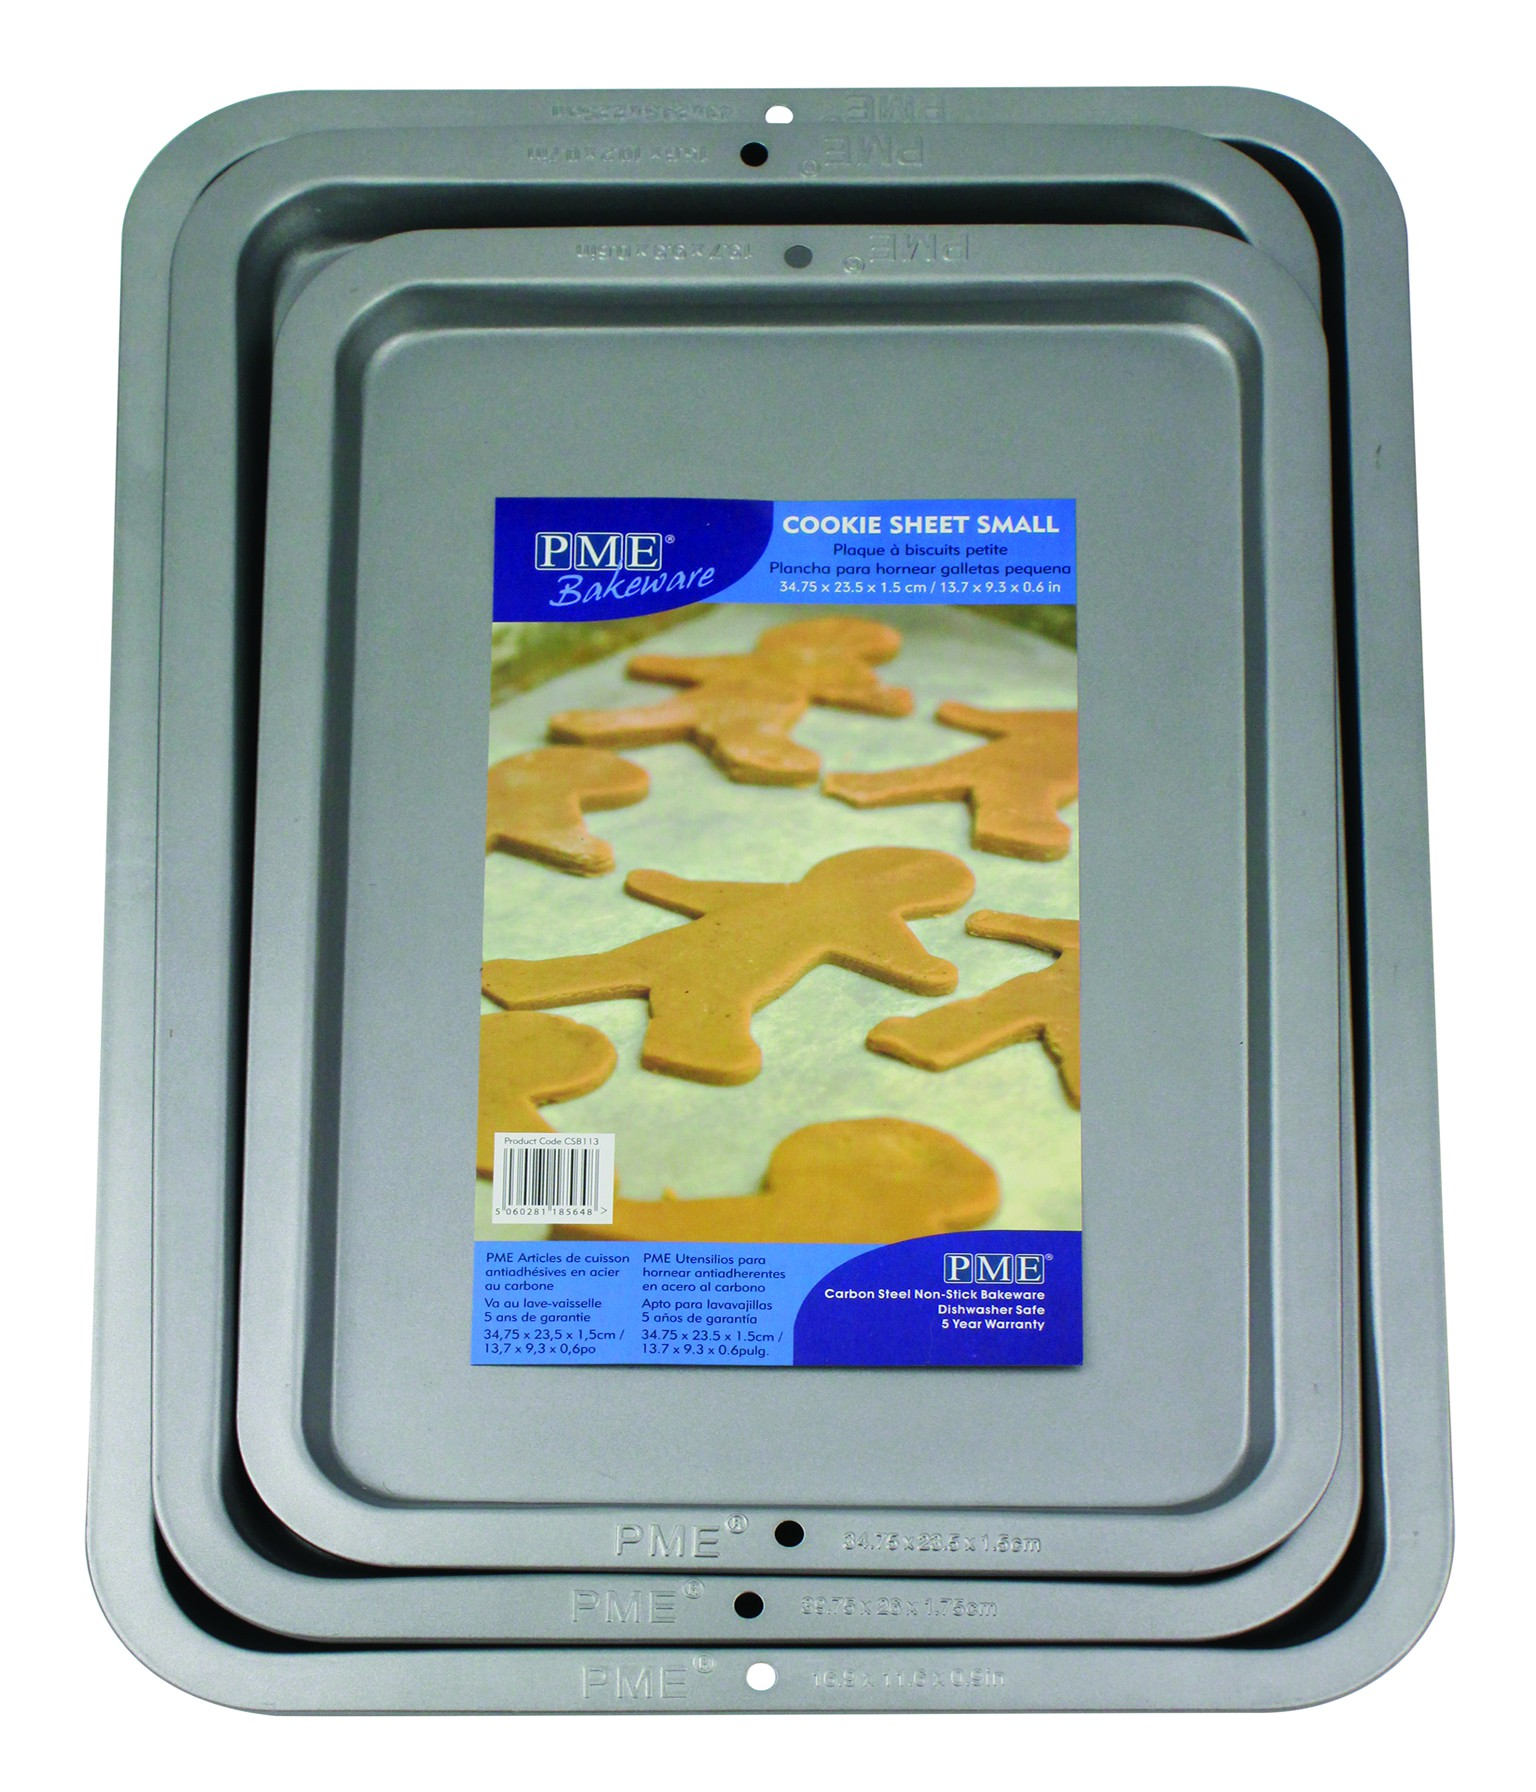 2001889 Jem Nonstick Cookie Sheet 34.8 x 23.5